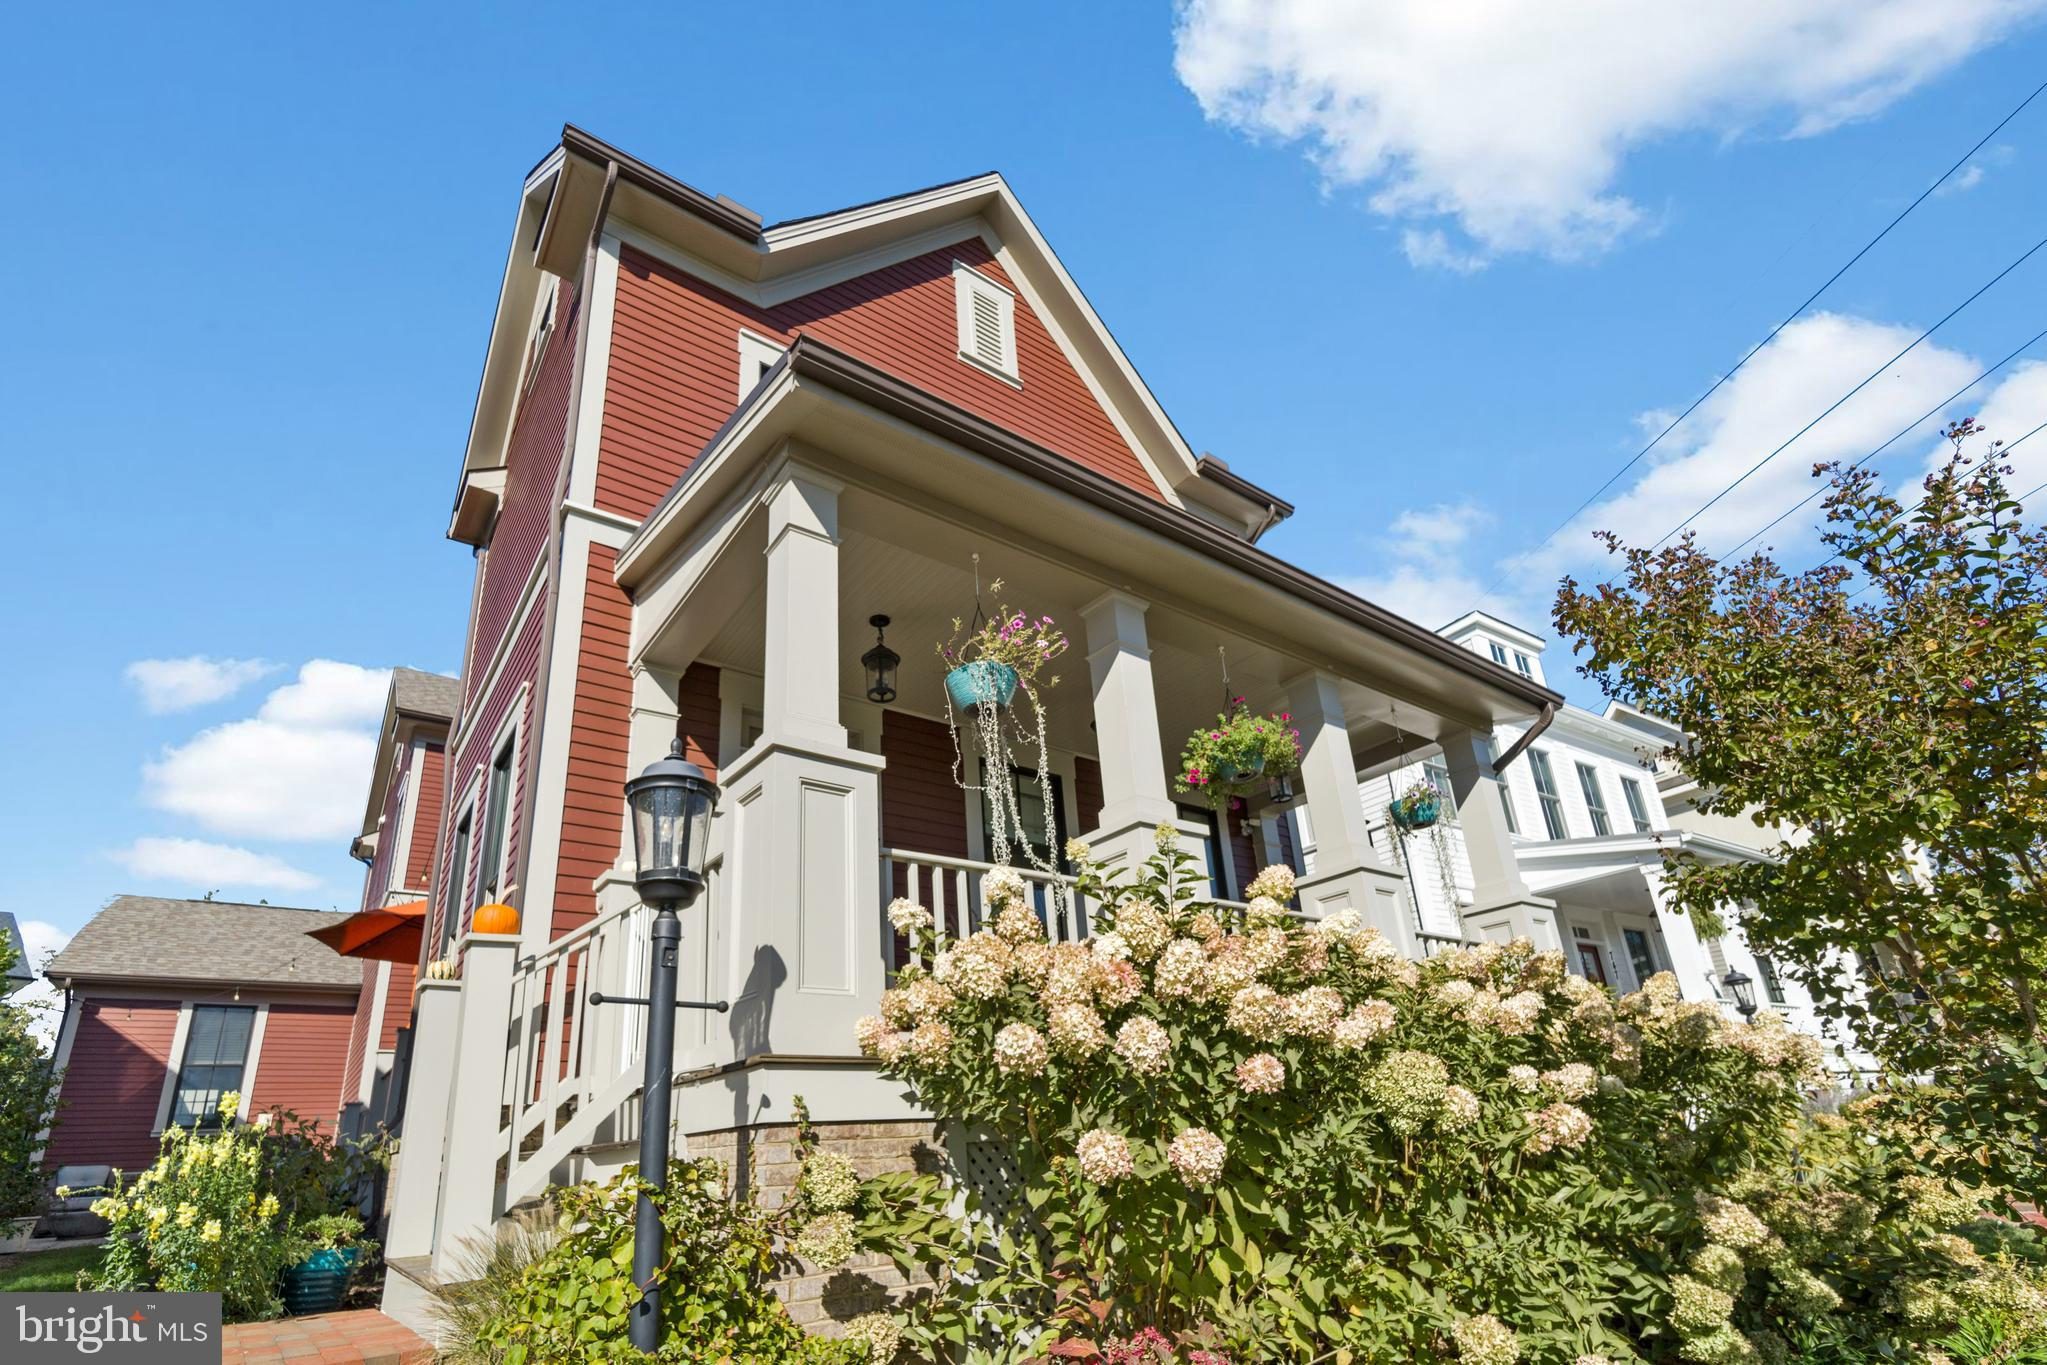 Beautiful 4 BR / 3.5 BTH home with 3,000 sq feet and private outdoor space in Historic Downtown Hern